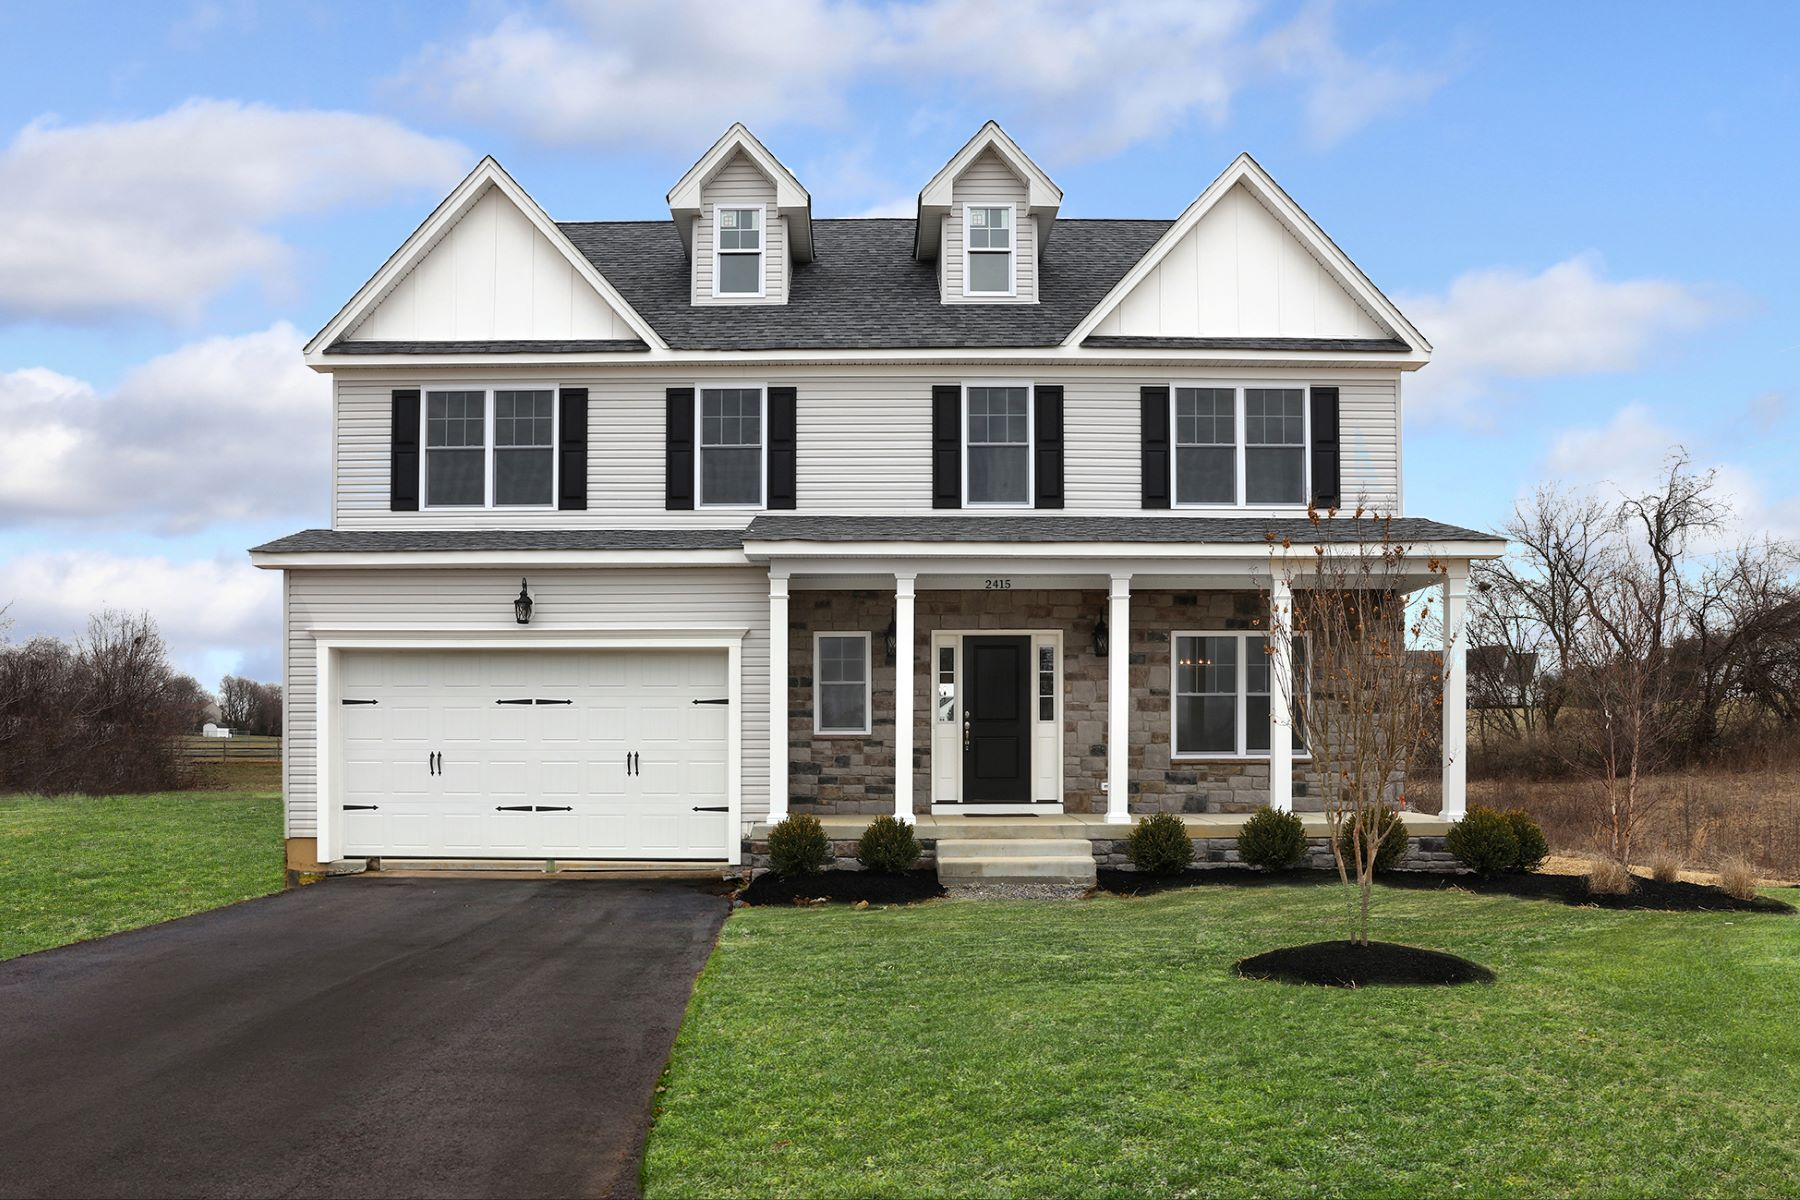 Introducing Stone River Homes 2430 Liberty Terrace, Easton, Pennsylvanien 18040 Vereinigte Staaten